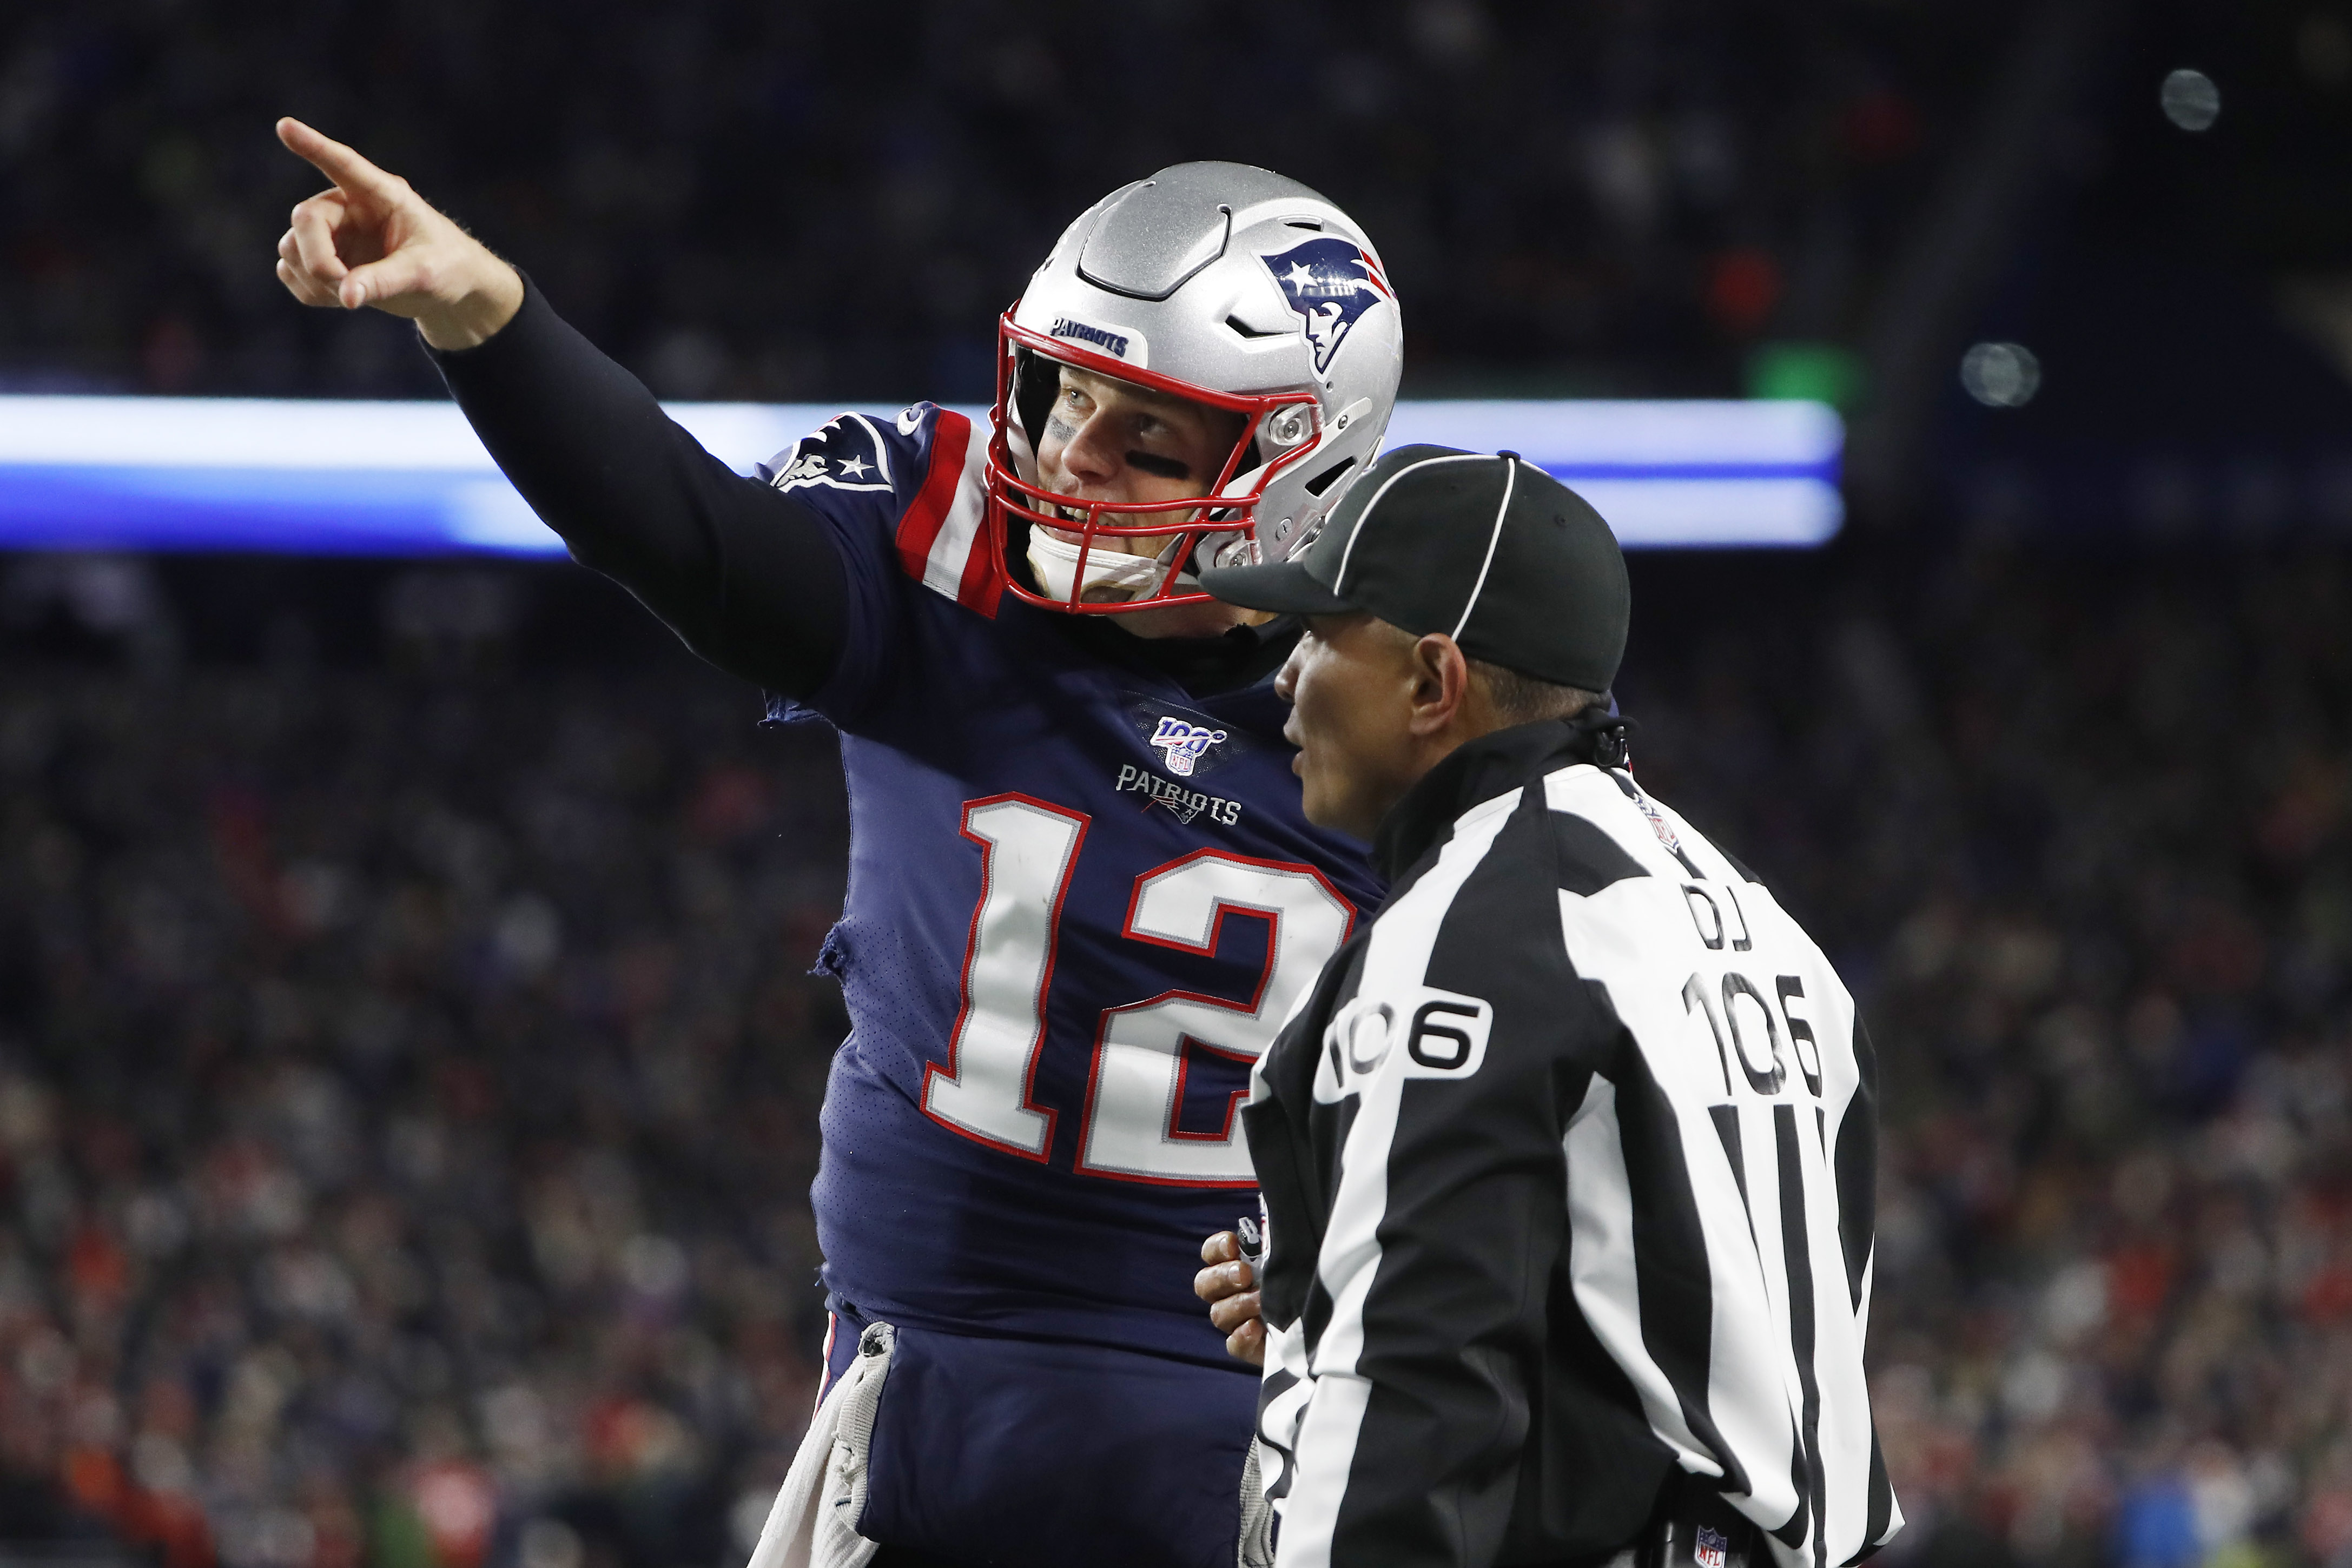 'We're on to Cincinnati' Mantra Will Be Resurrected After Patriots' 23-16 Loss to Chiefs